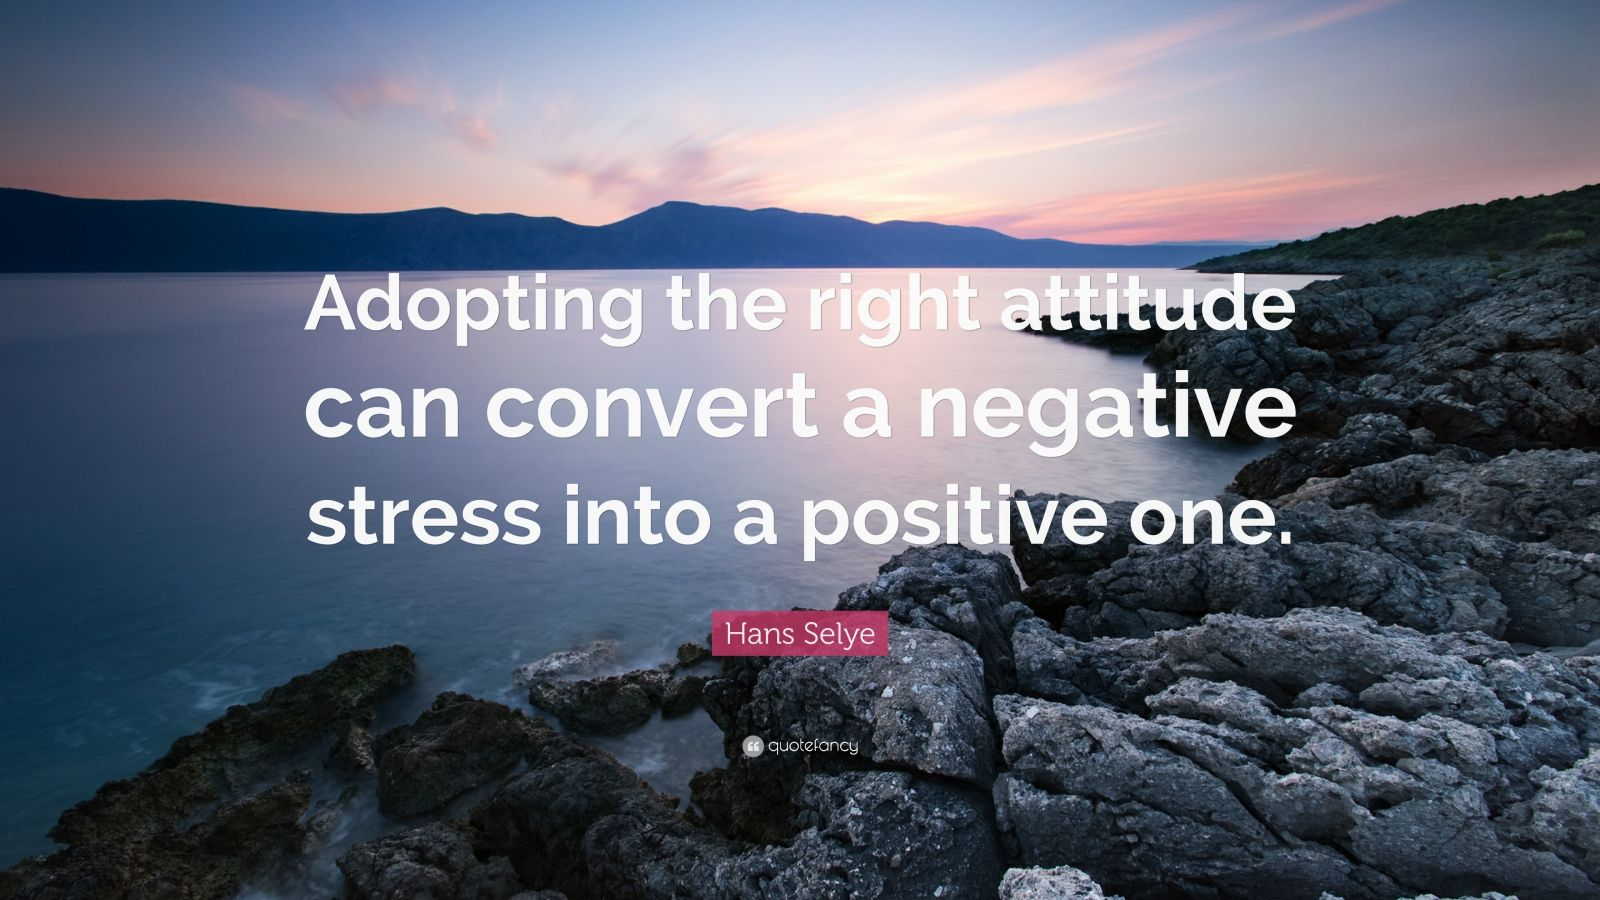 positive quotes quotefancy positive quotes adopting the right attitude can convert a negative stress into a positive